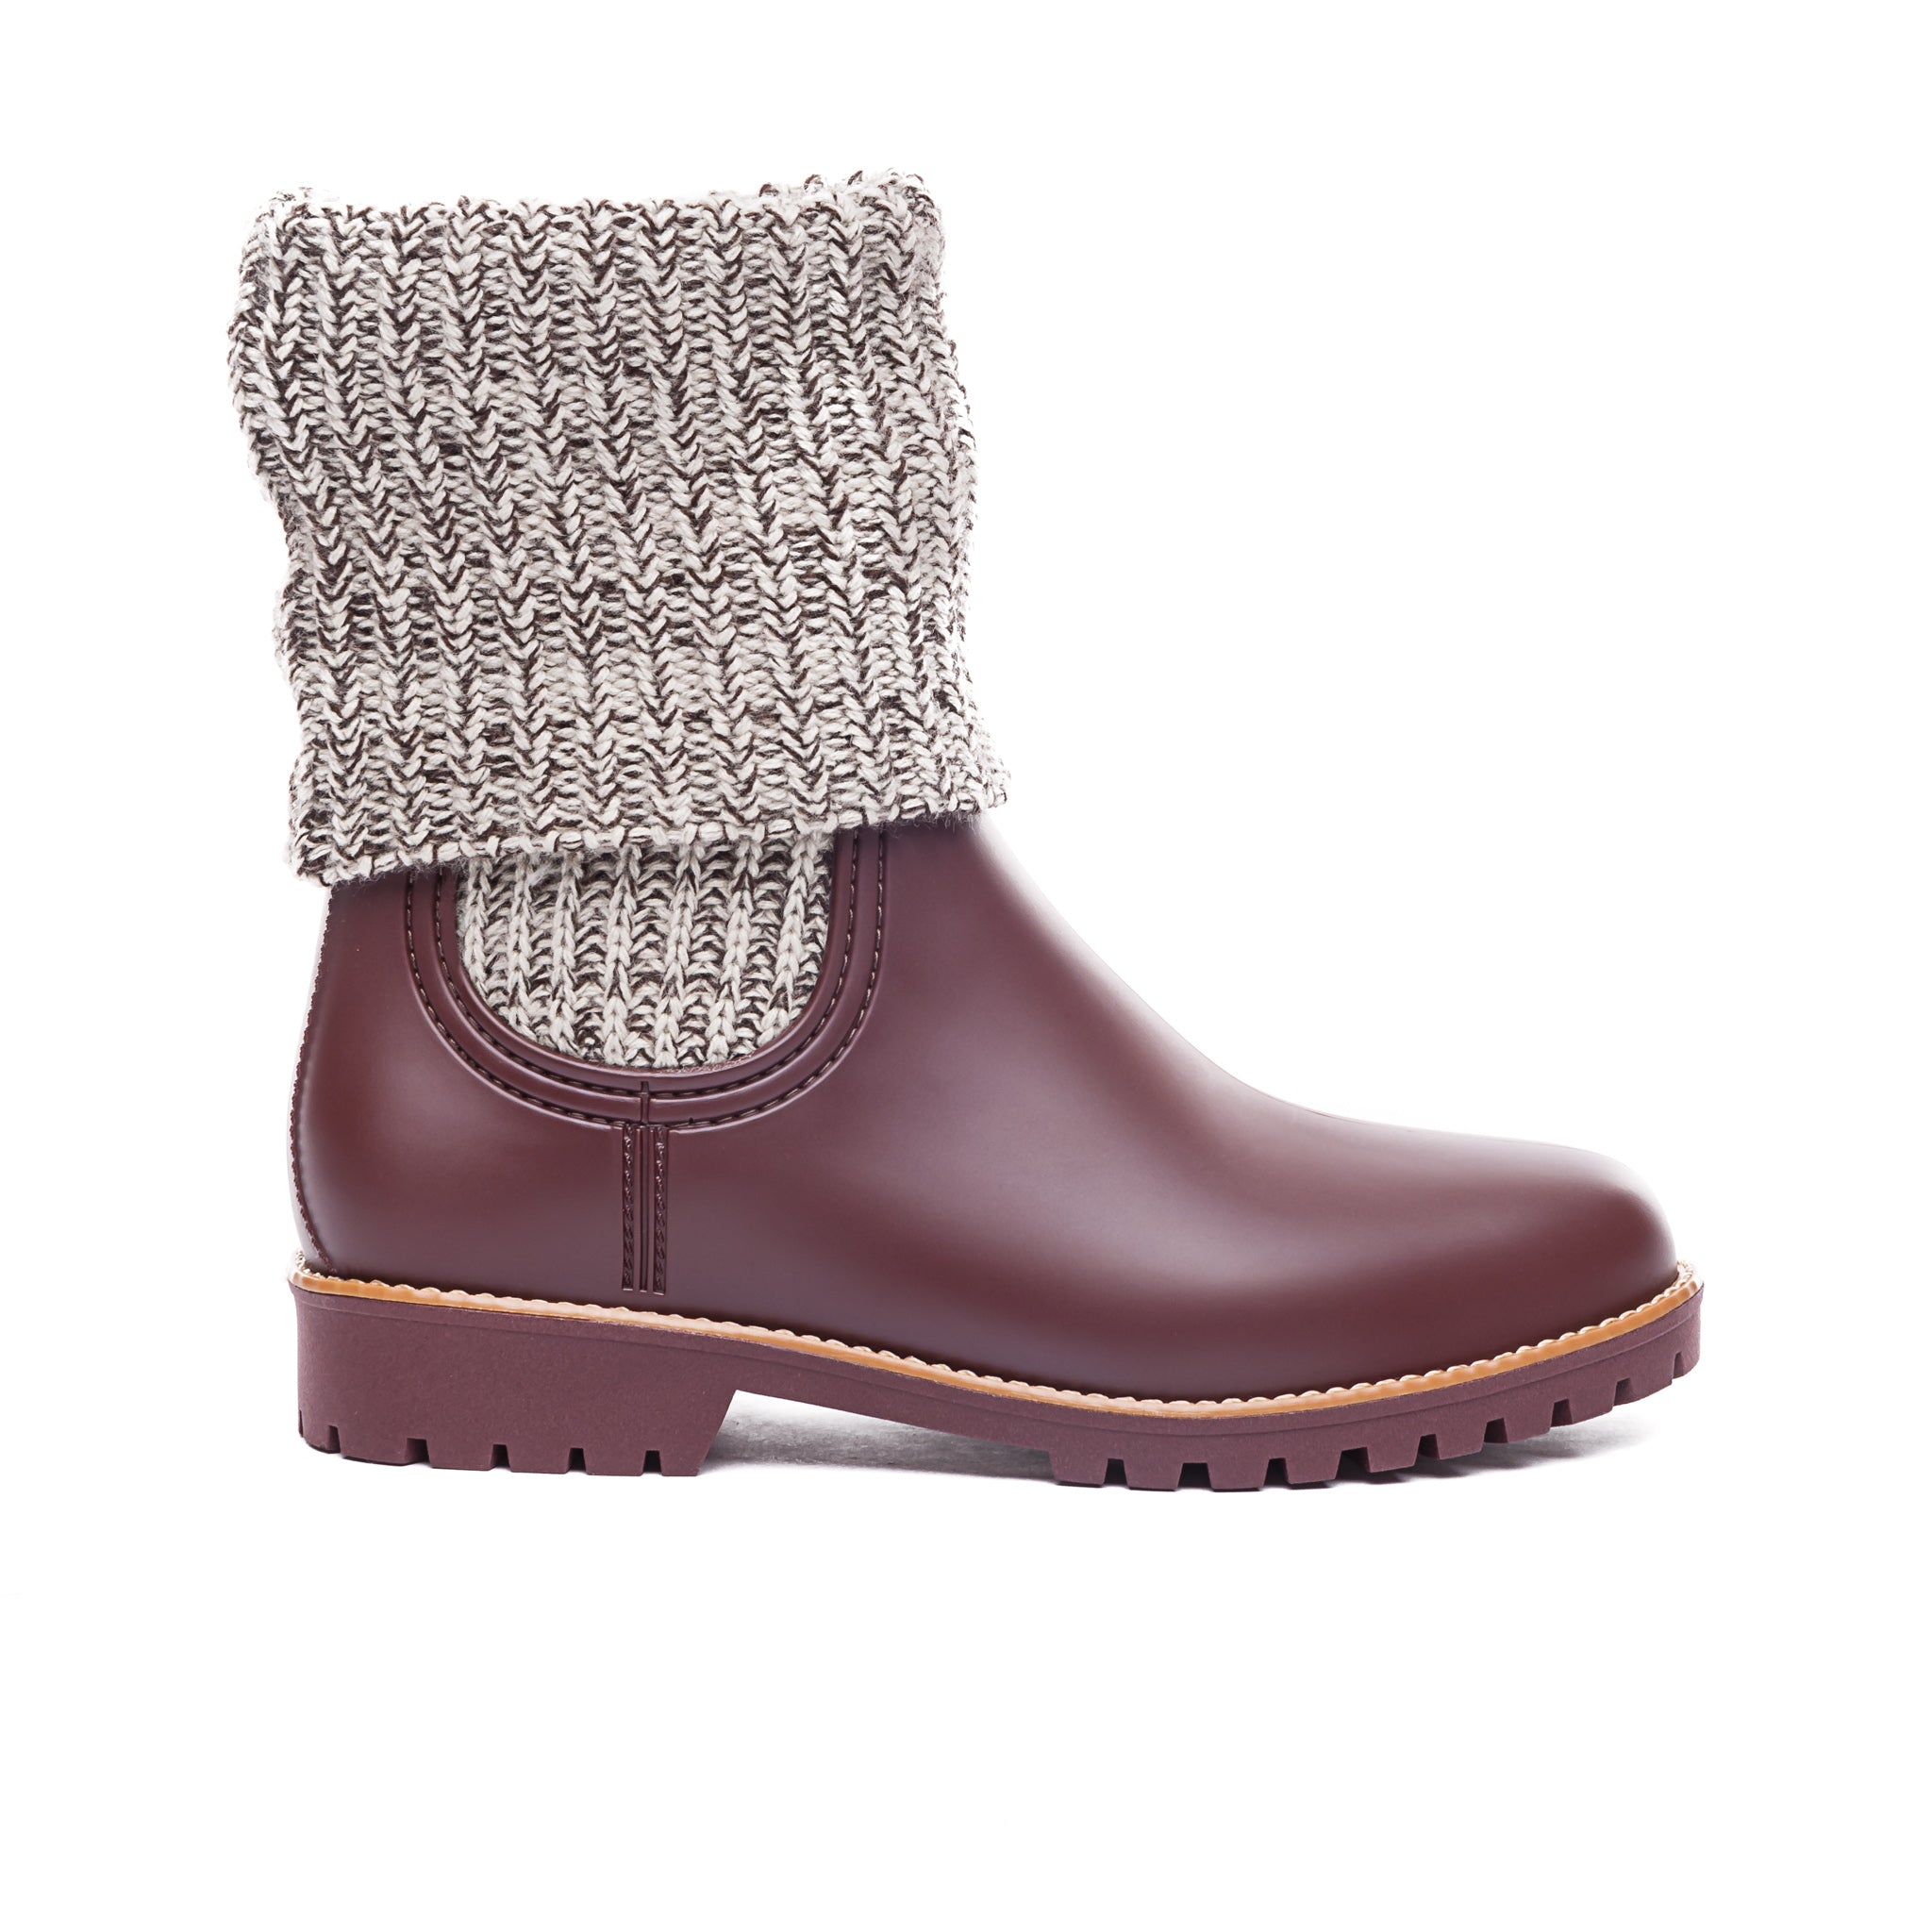 Zurich Rain Boot with Knit Detail in Hot Chocolate